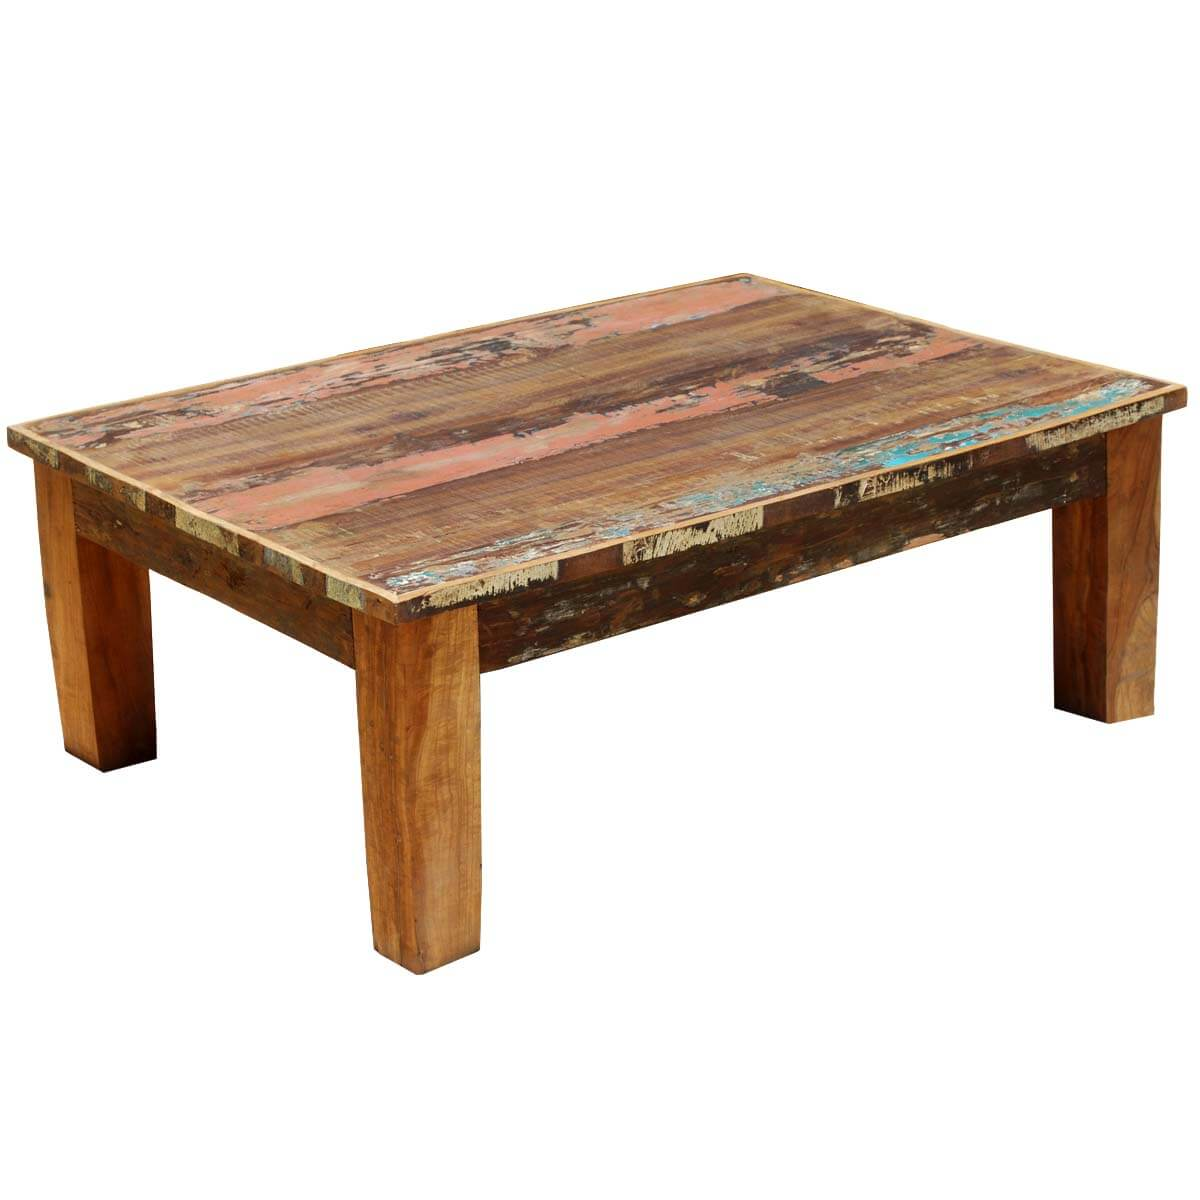 Appalachian rustic mixed reclaimed wood coffee table Espresso coffee table